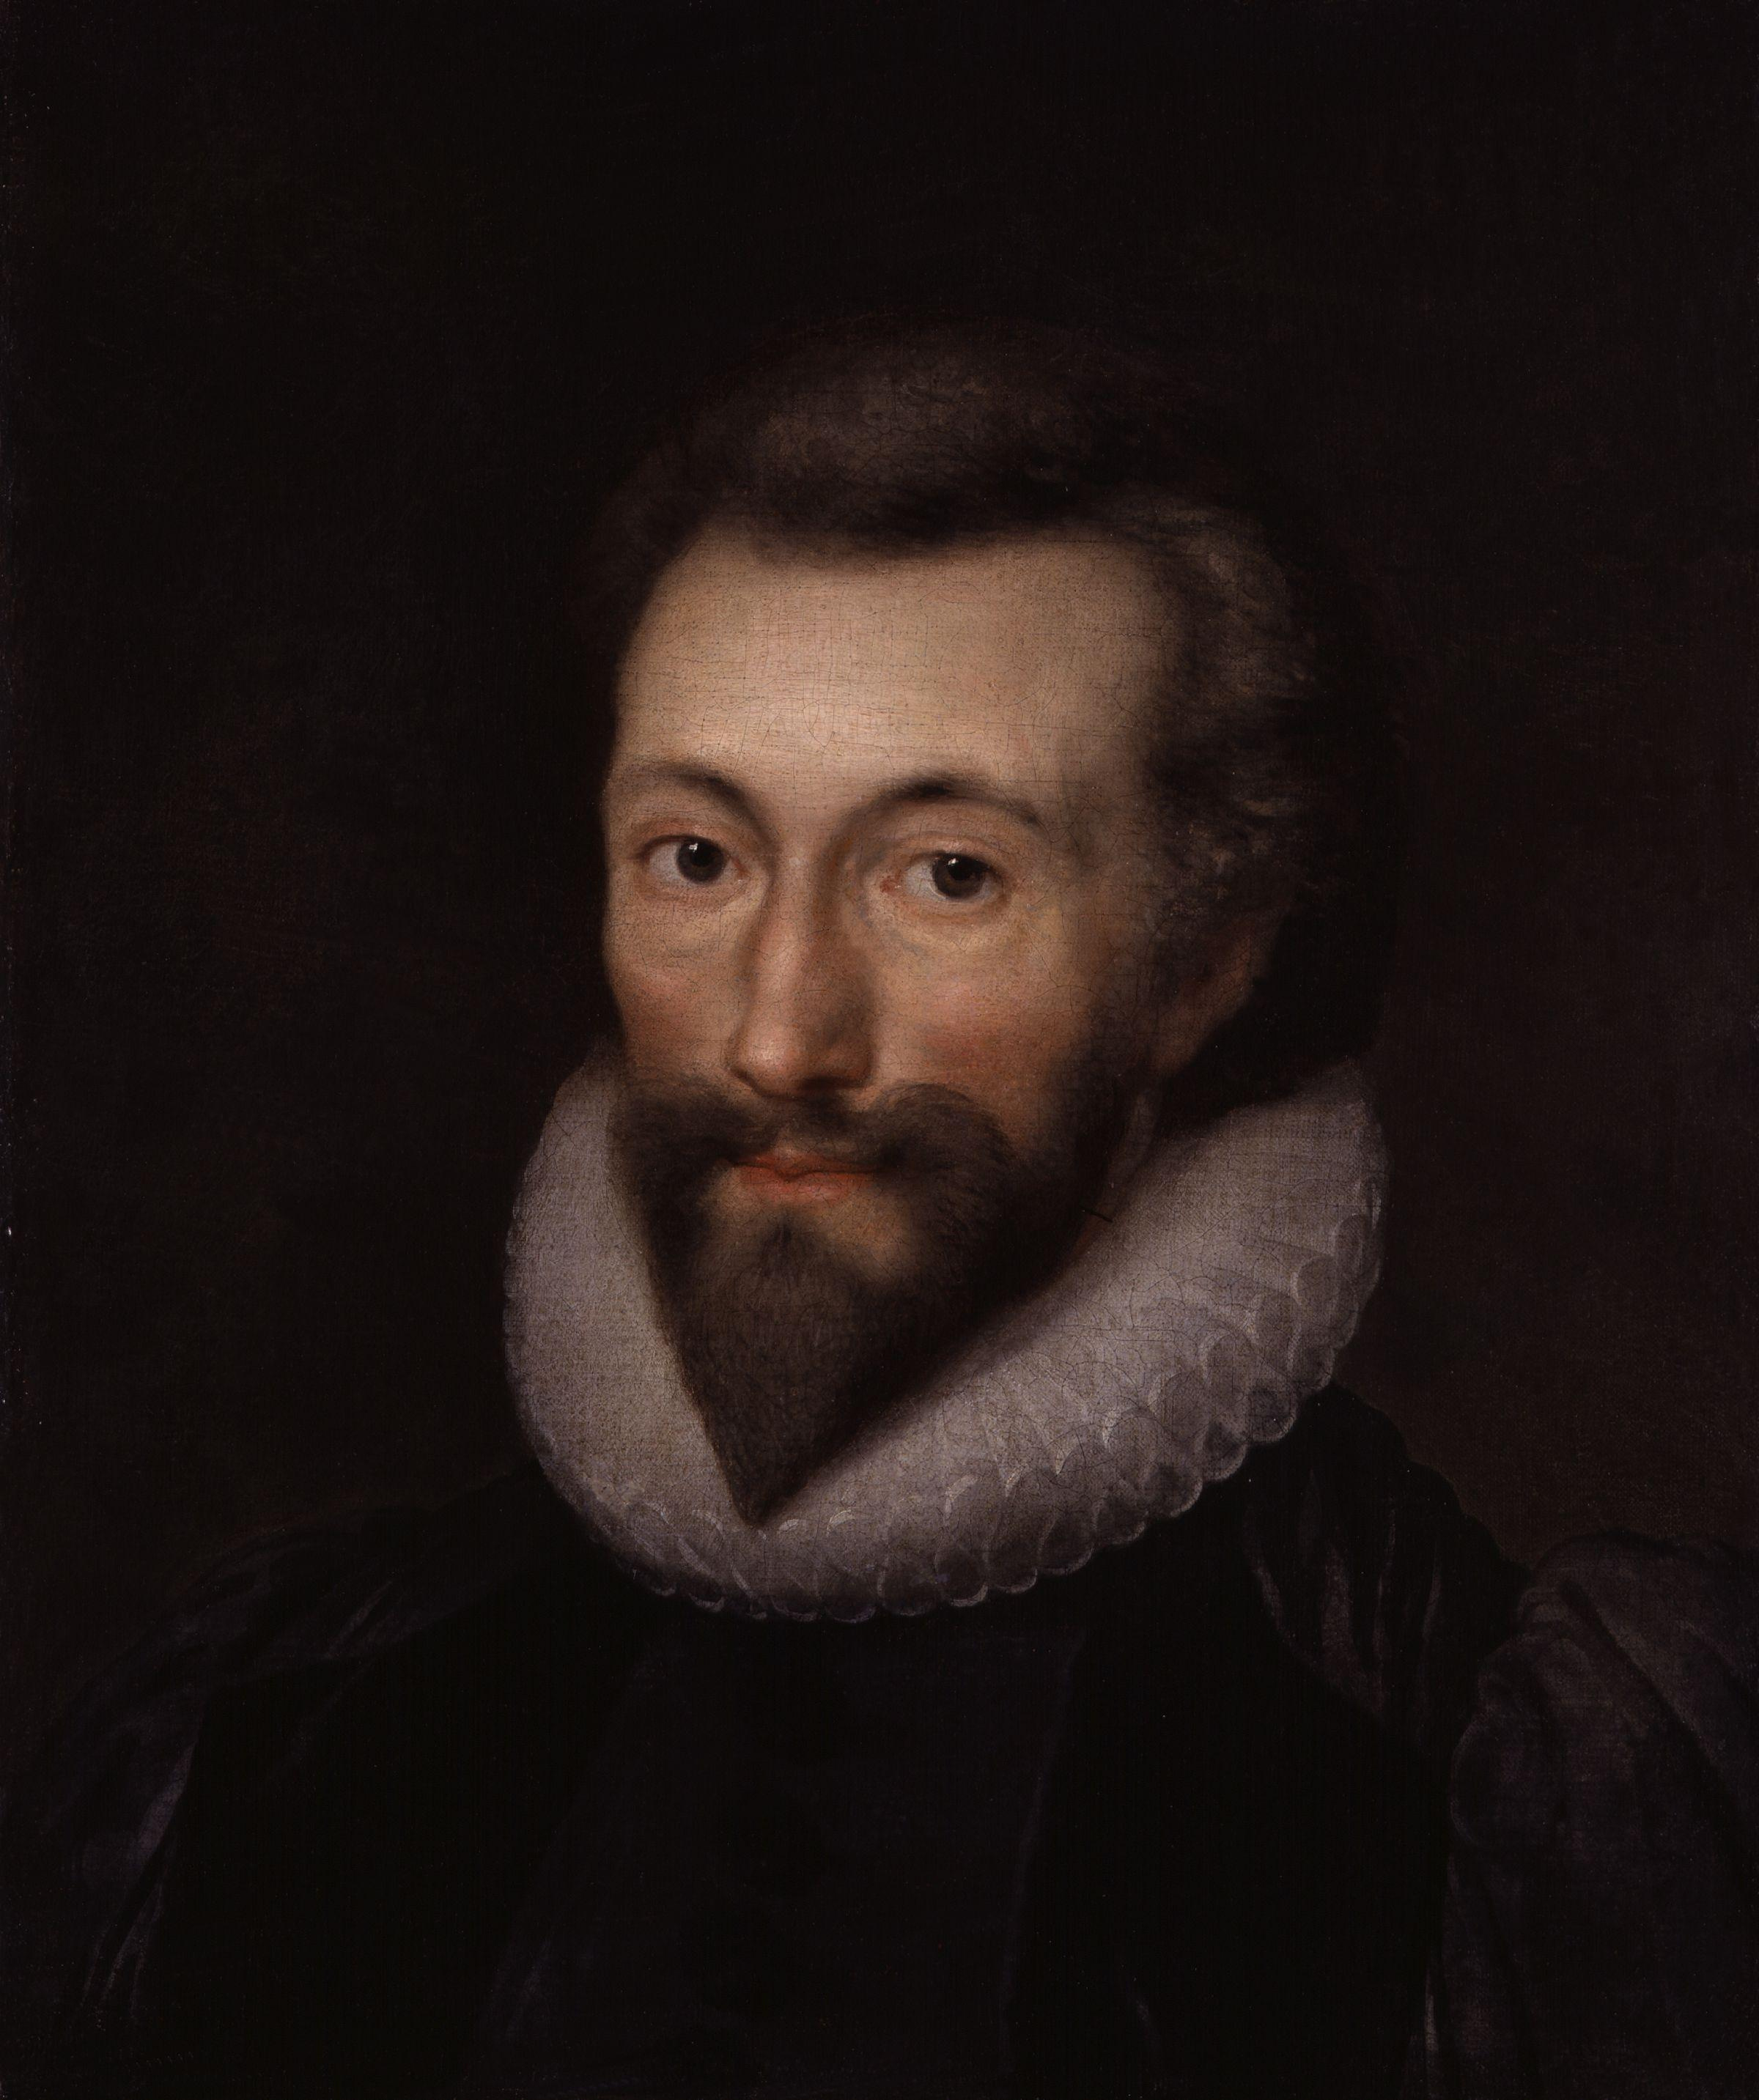 john donne penny s poetry pages wiki fandom powered by wikia john donne by isaac oliver